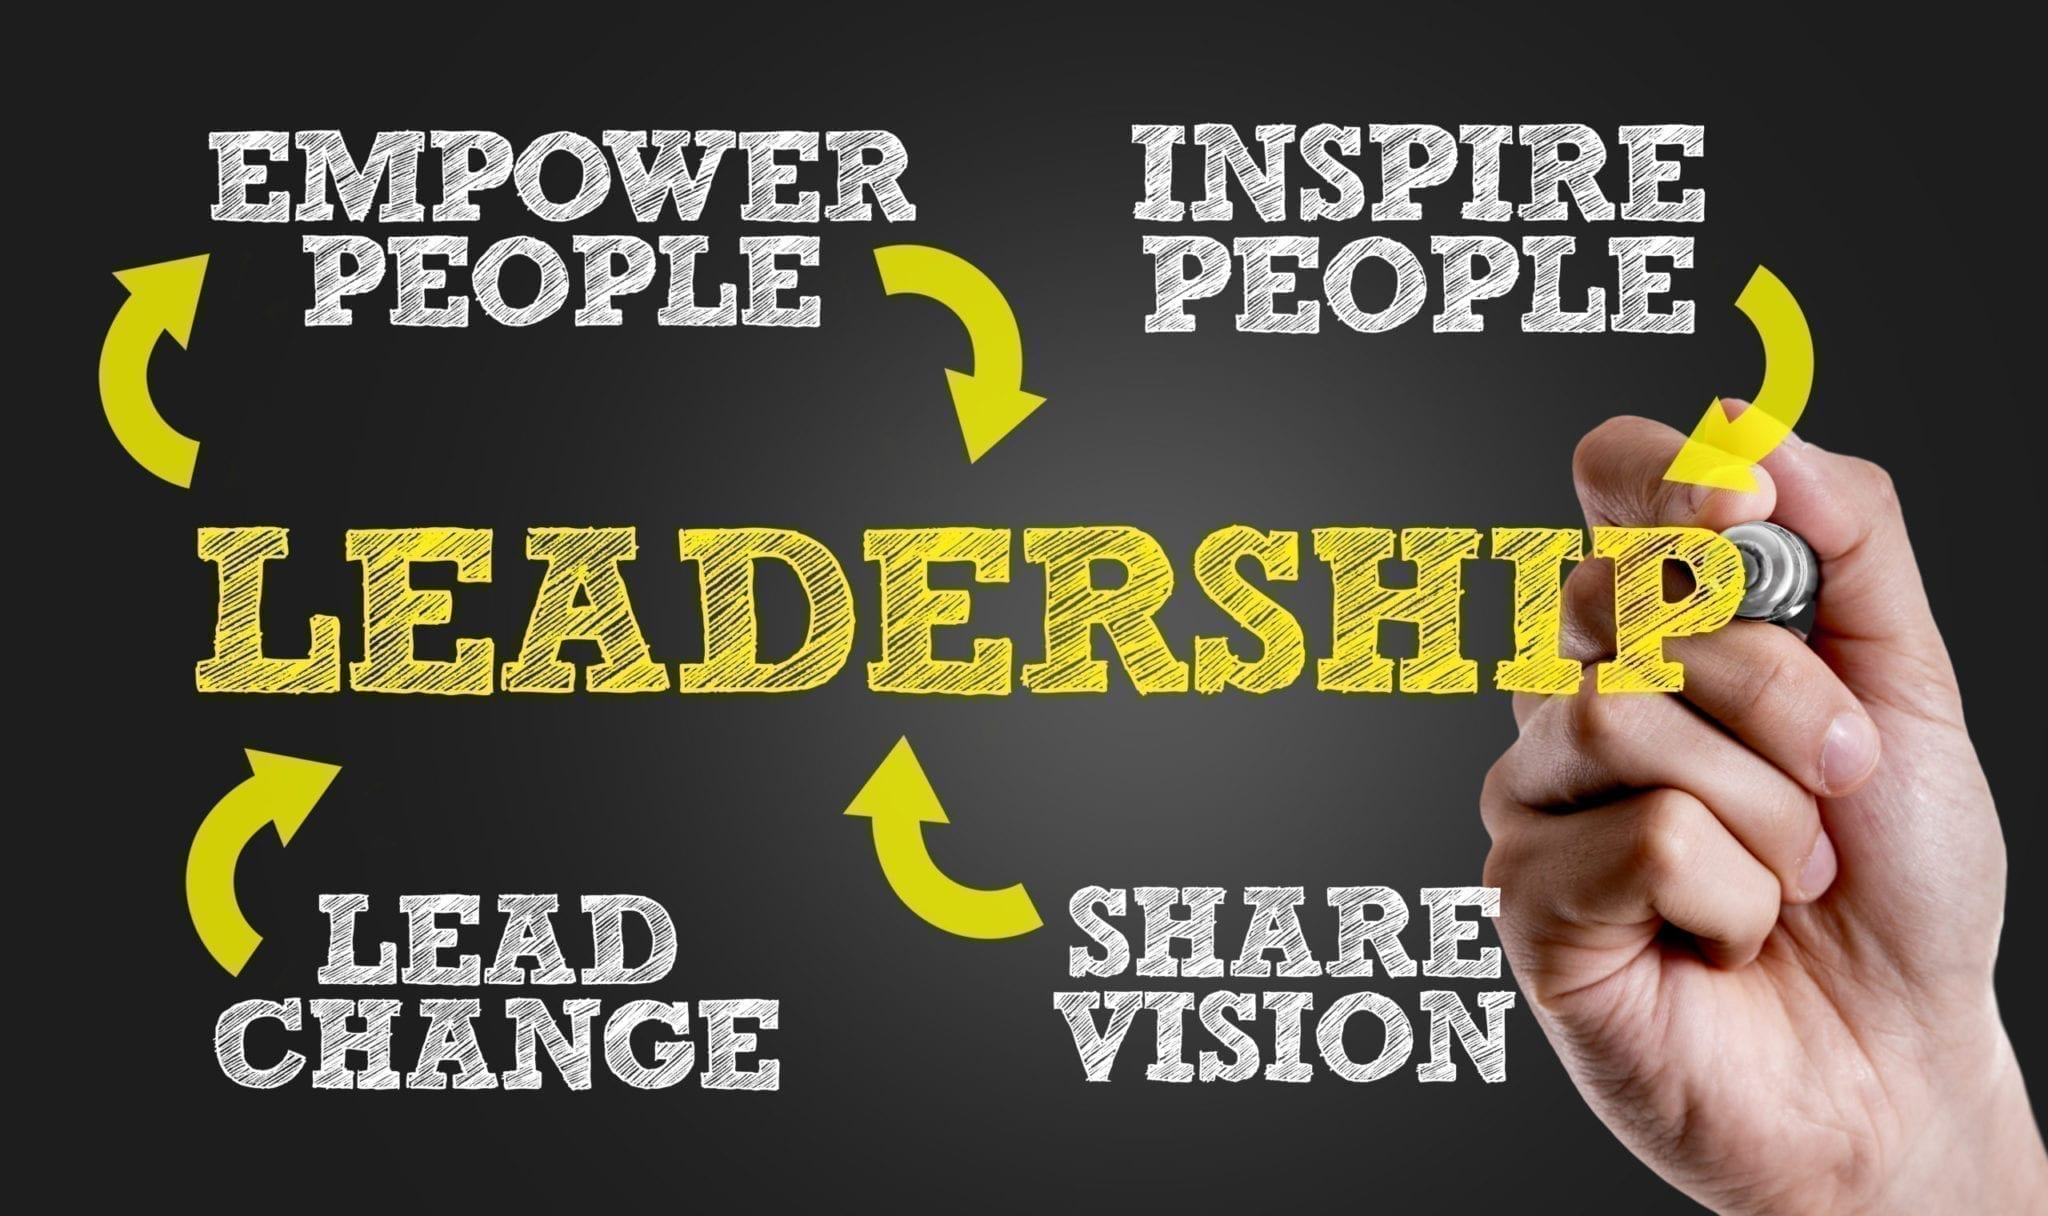 To achieve your best results, leadership needs transformation too